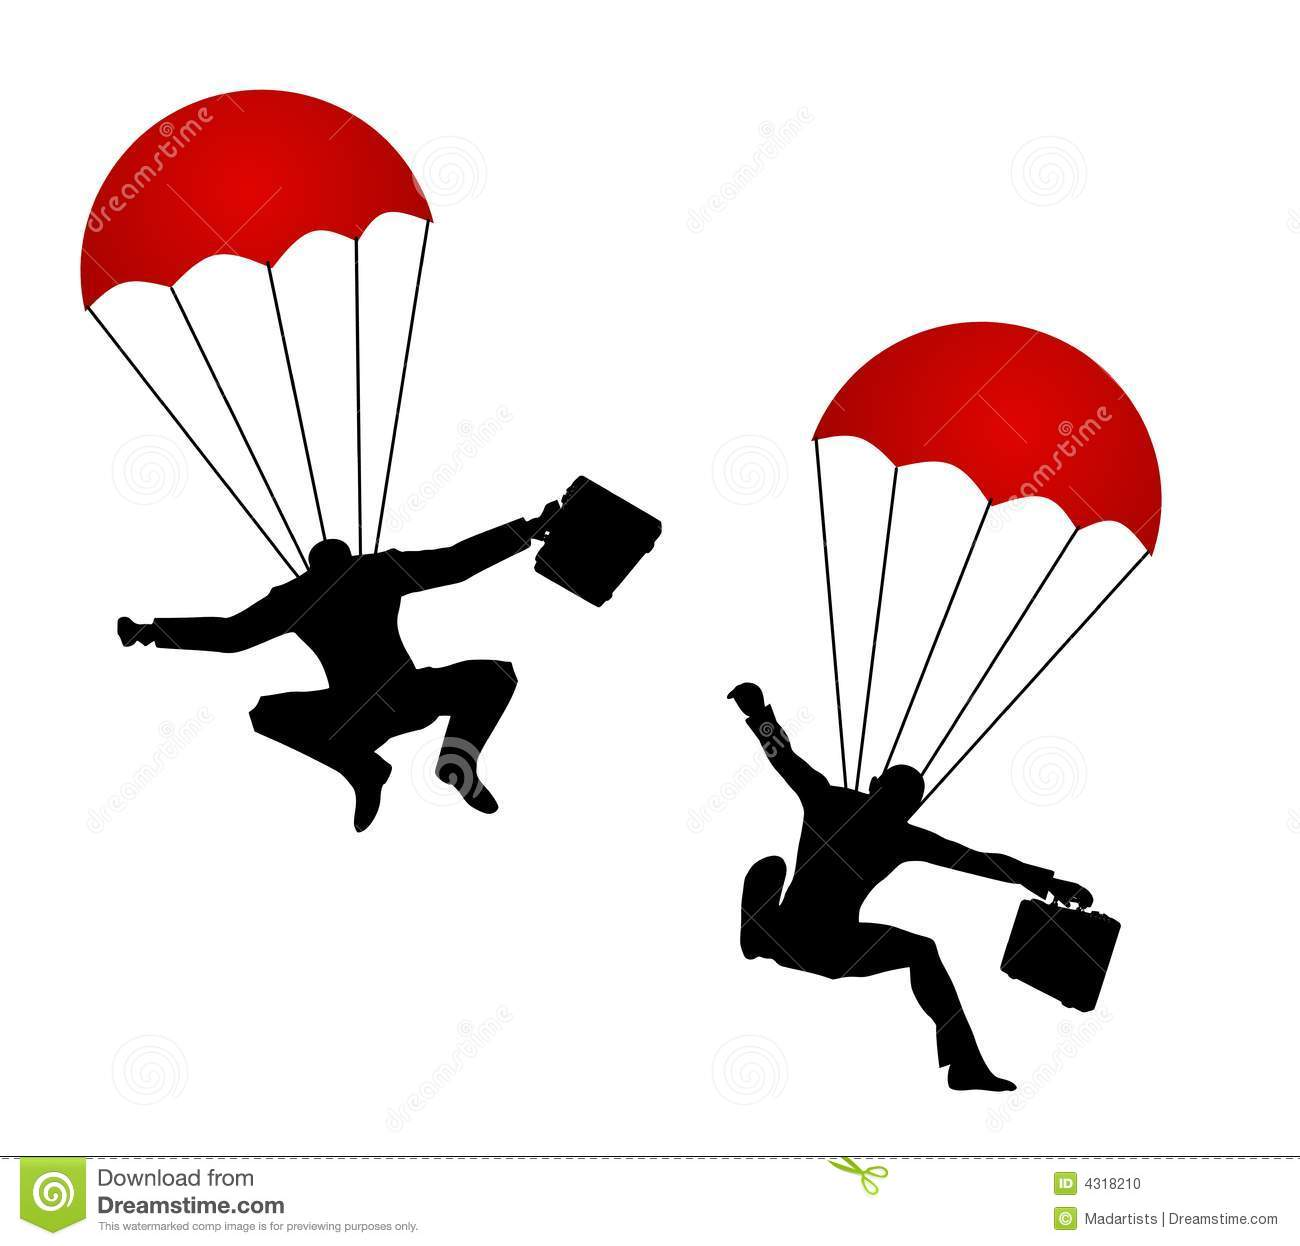 solutions  security  risk taking and similar business related topicsRisk Taker Clipart